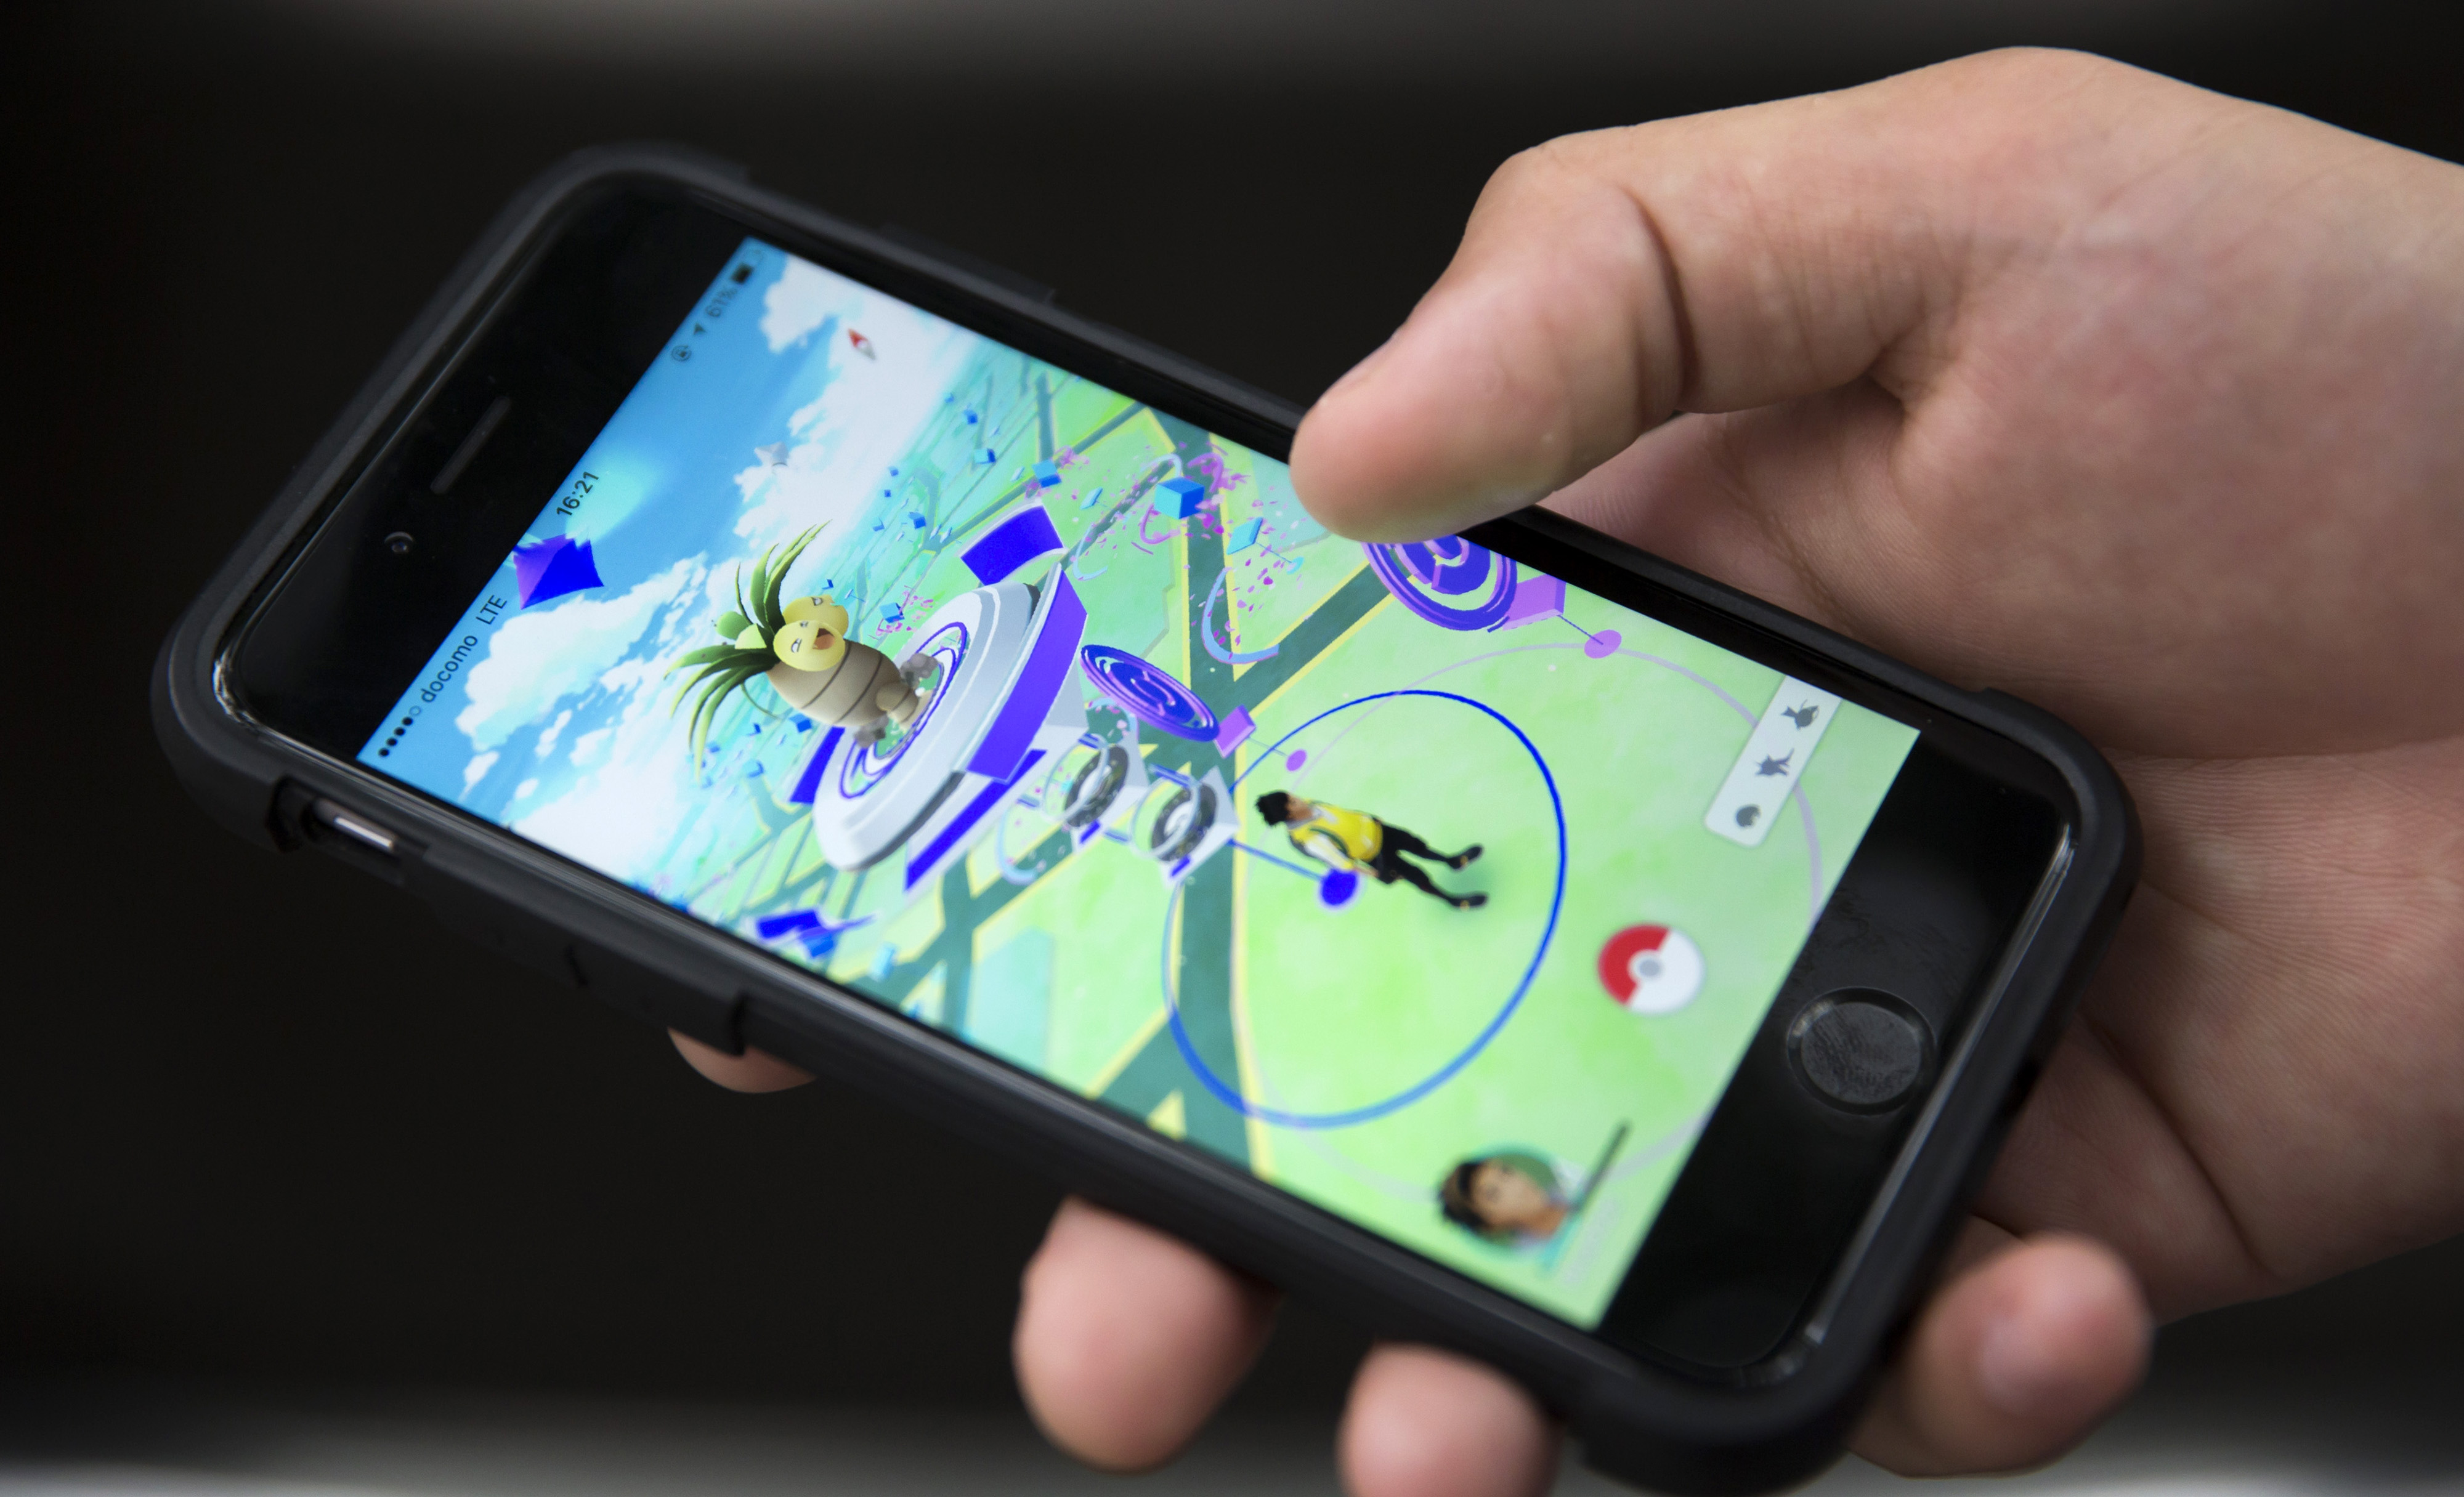 A man plays Pokemon Go game on a smartphone on July 22, 2016 in Tokyo, Japan.